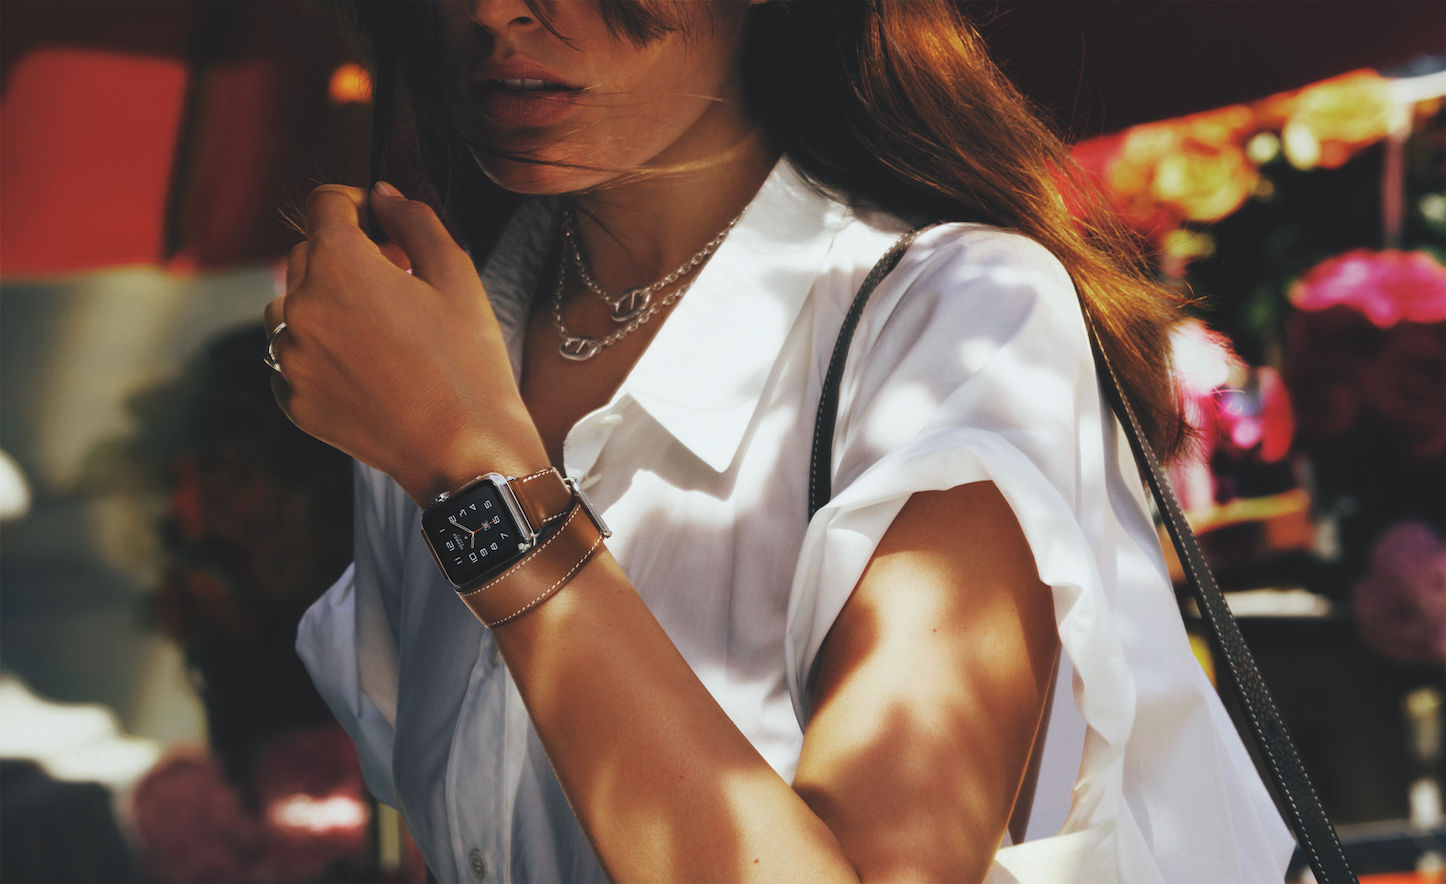 AppleWatch DavidSims